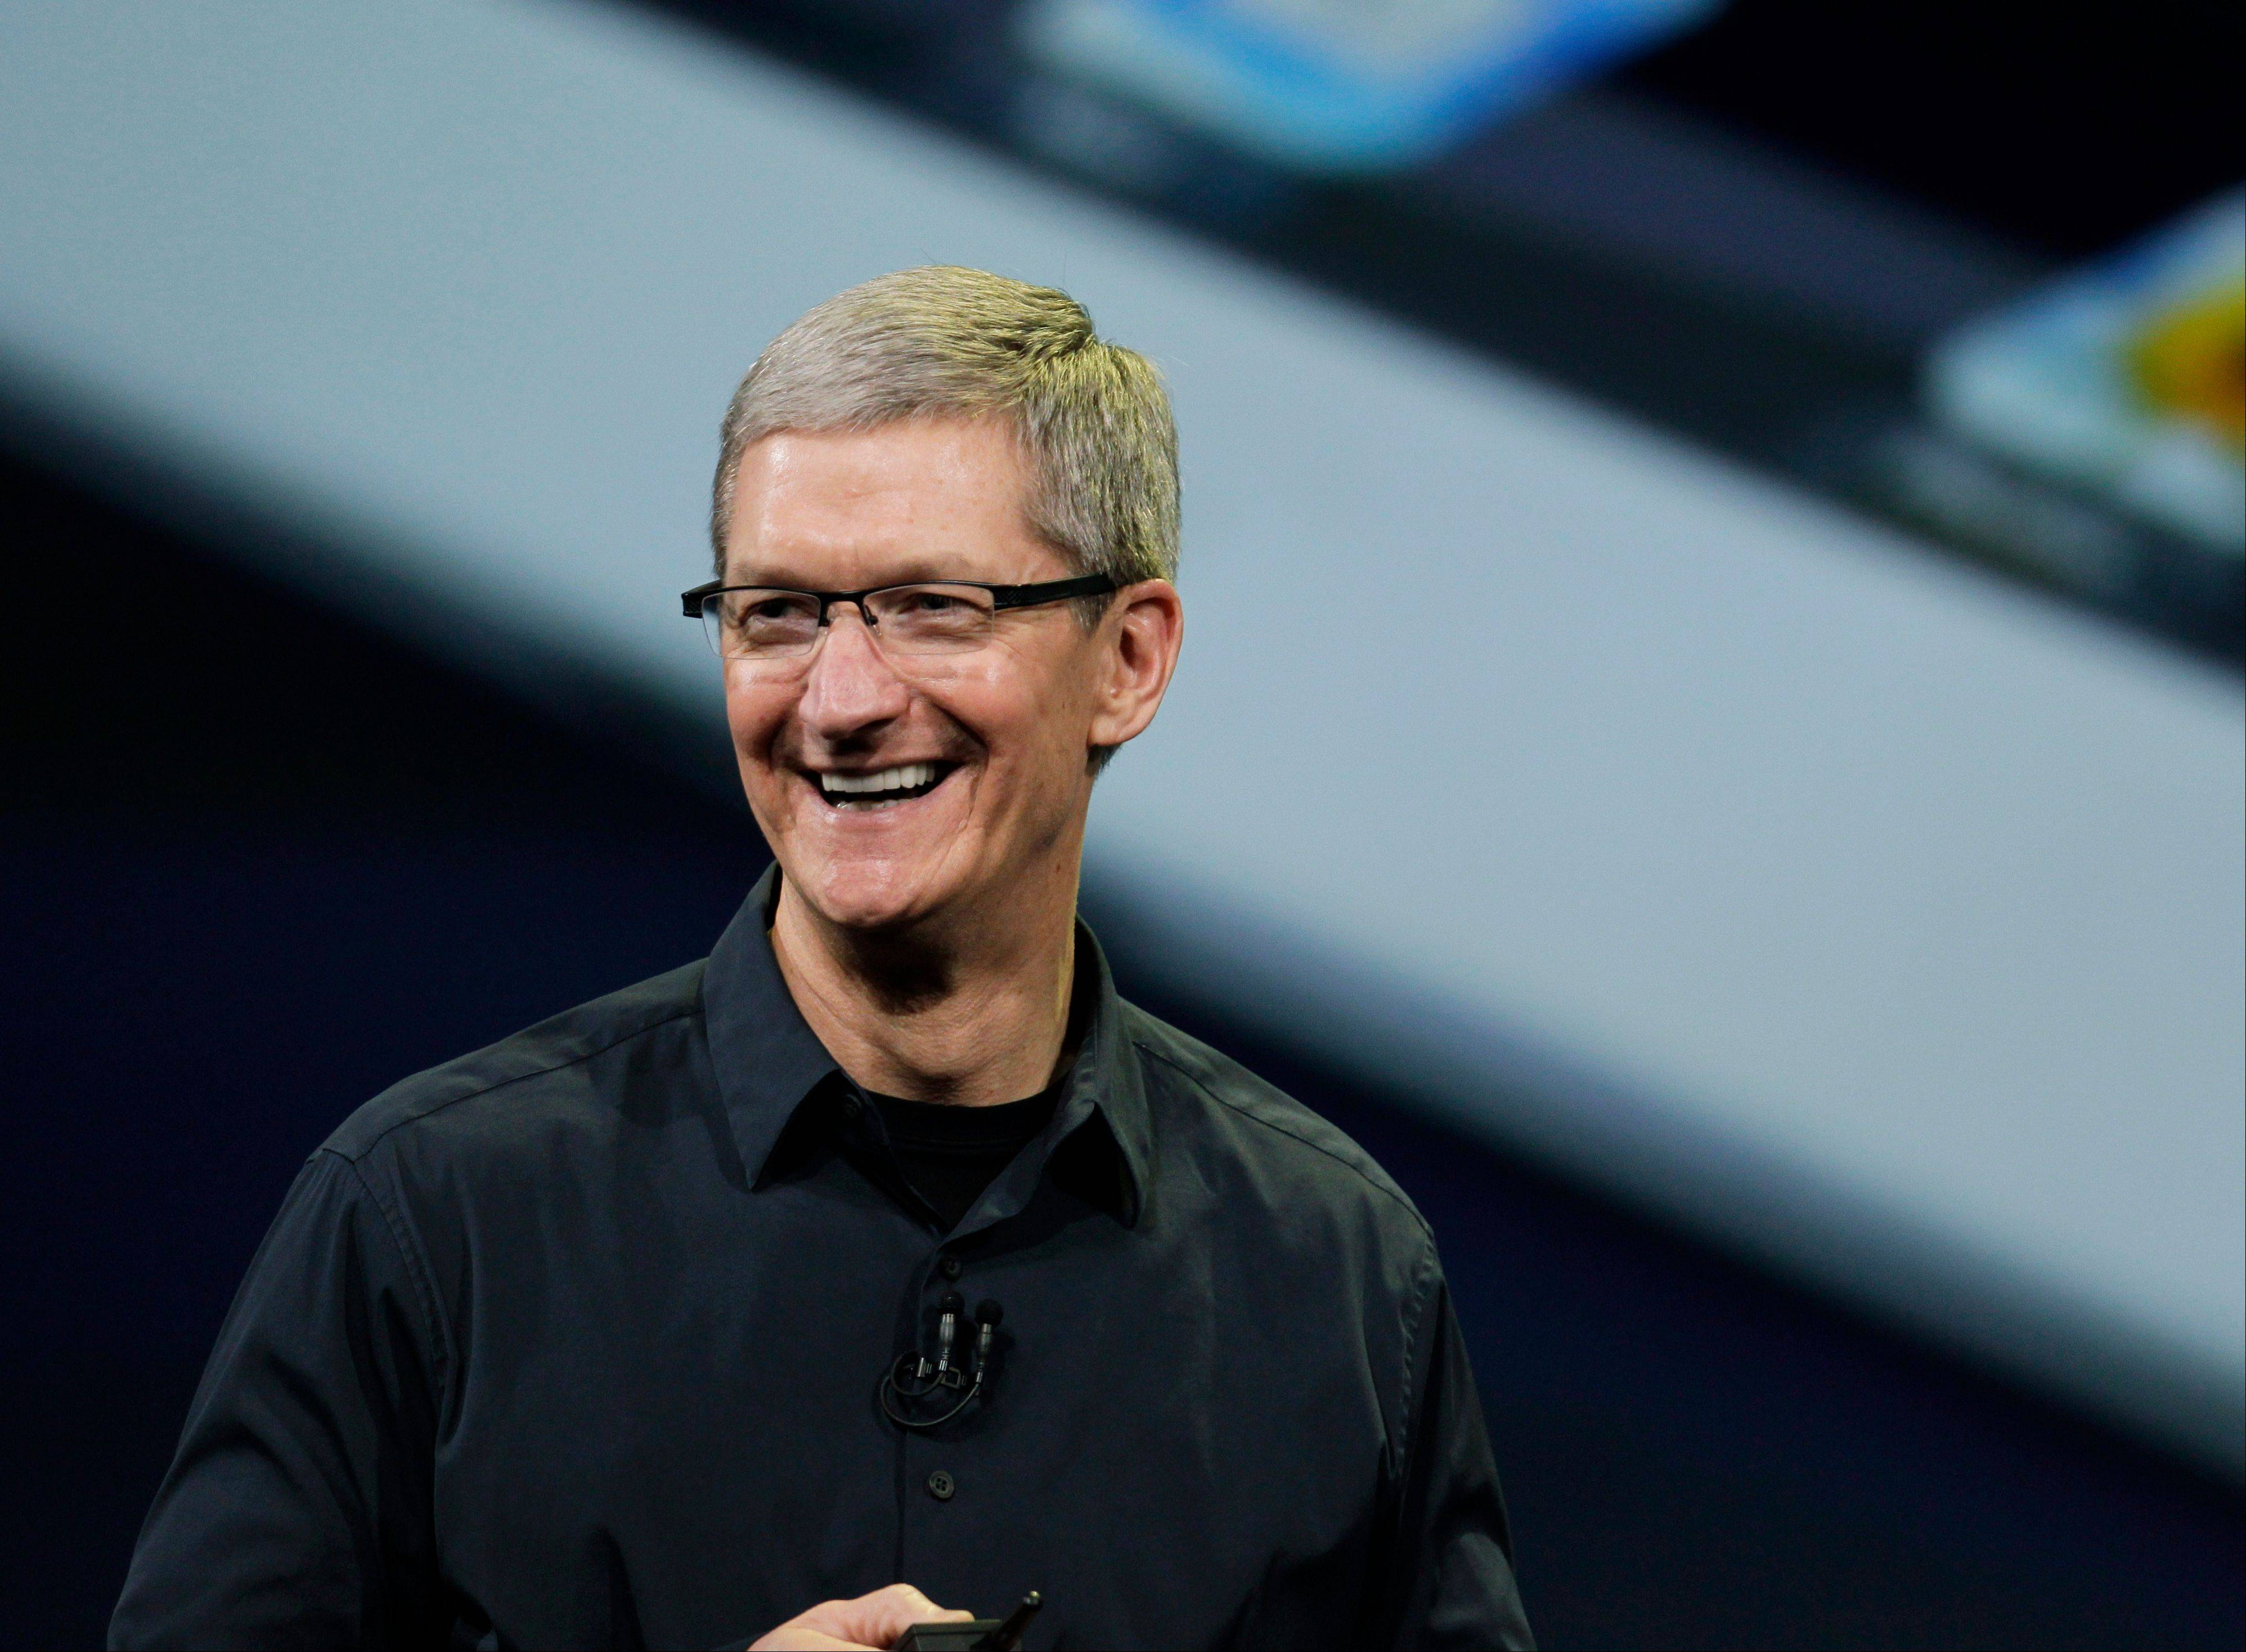 Apple CEO Tim Cook is calling a shareholder lawsuit against the company a �silly sideshow,� even as he said he is open to looking at the shareholder�s proposals for sharing more cash with investors.